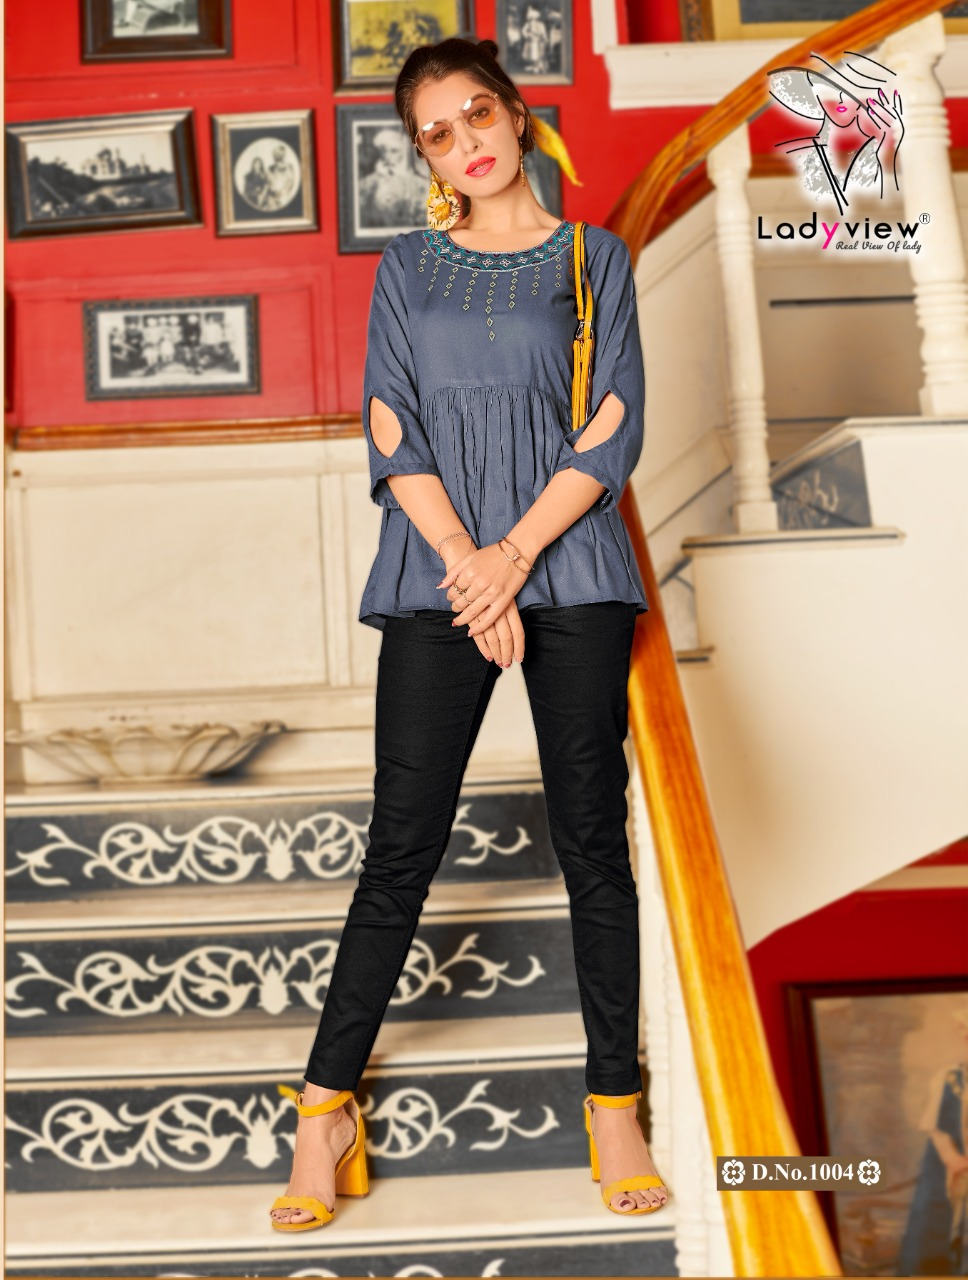 Lady View presents  Cool Crush Fancy Ladies Top Collection